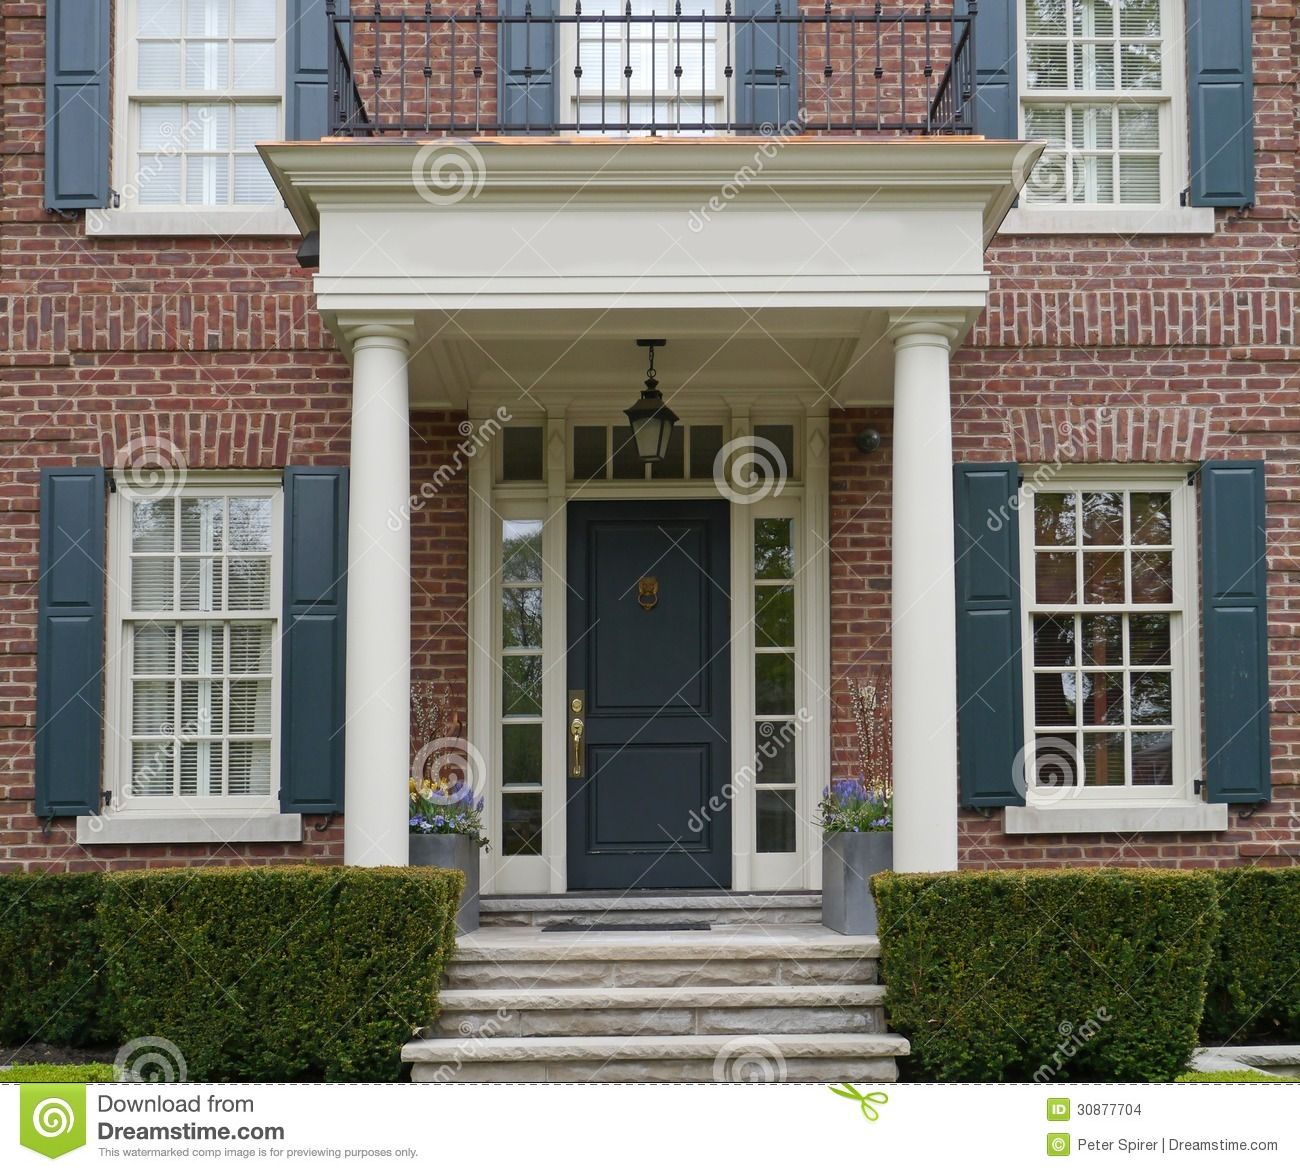 Covered front porch craftsman style home royalty free stock image - Picture Of Front Door Of House With Porch Ottawa May 2013 Stock Photo Images And Stock Photography